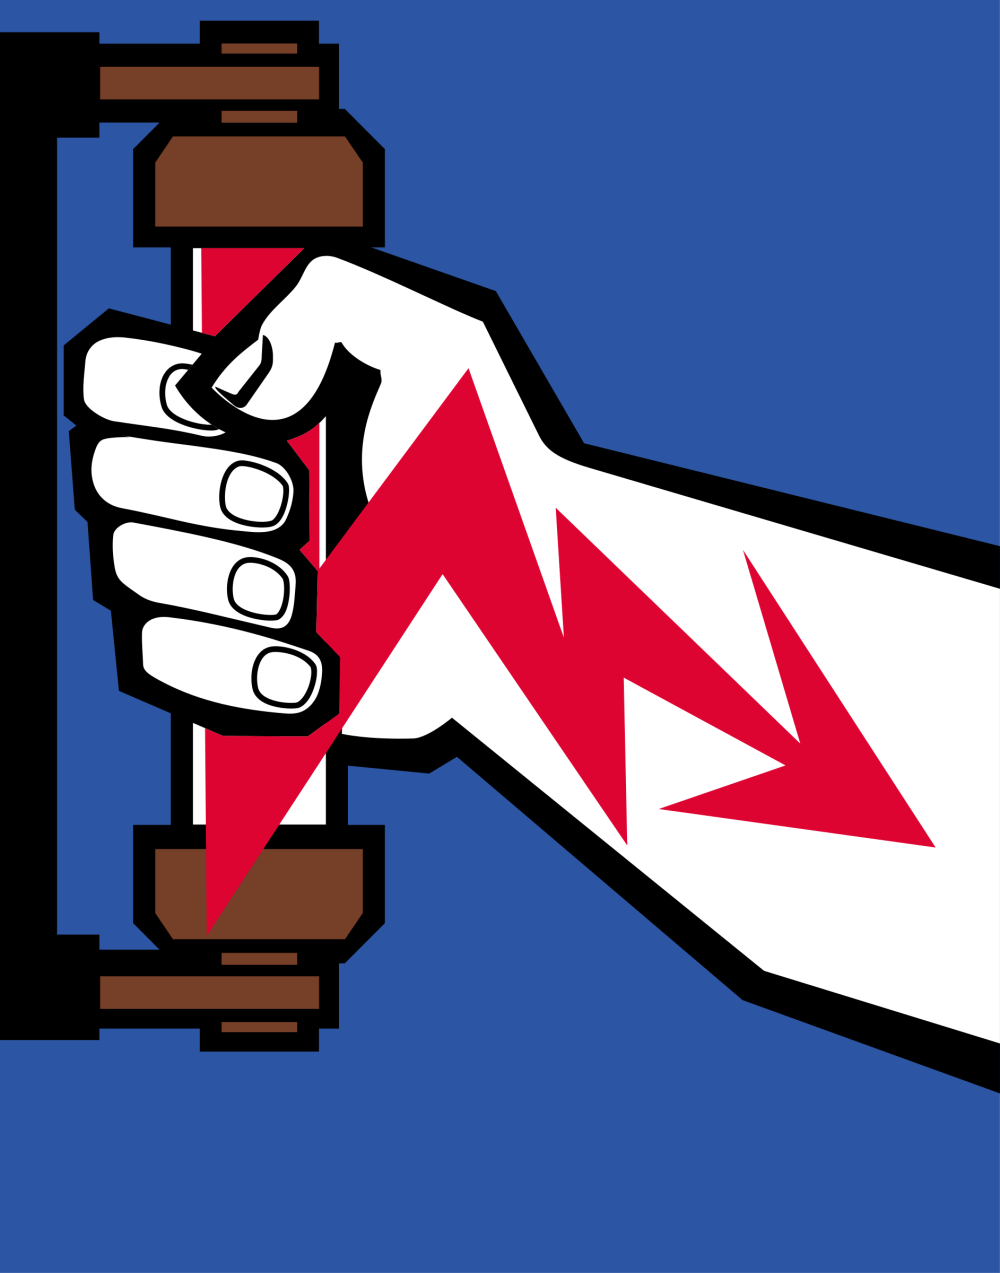 medium resolution of fuse electrical clipart